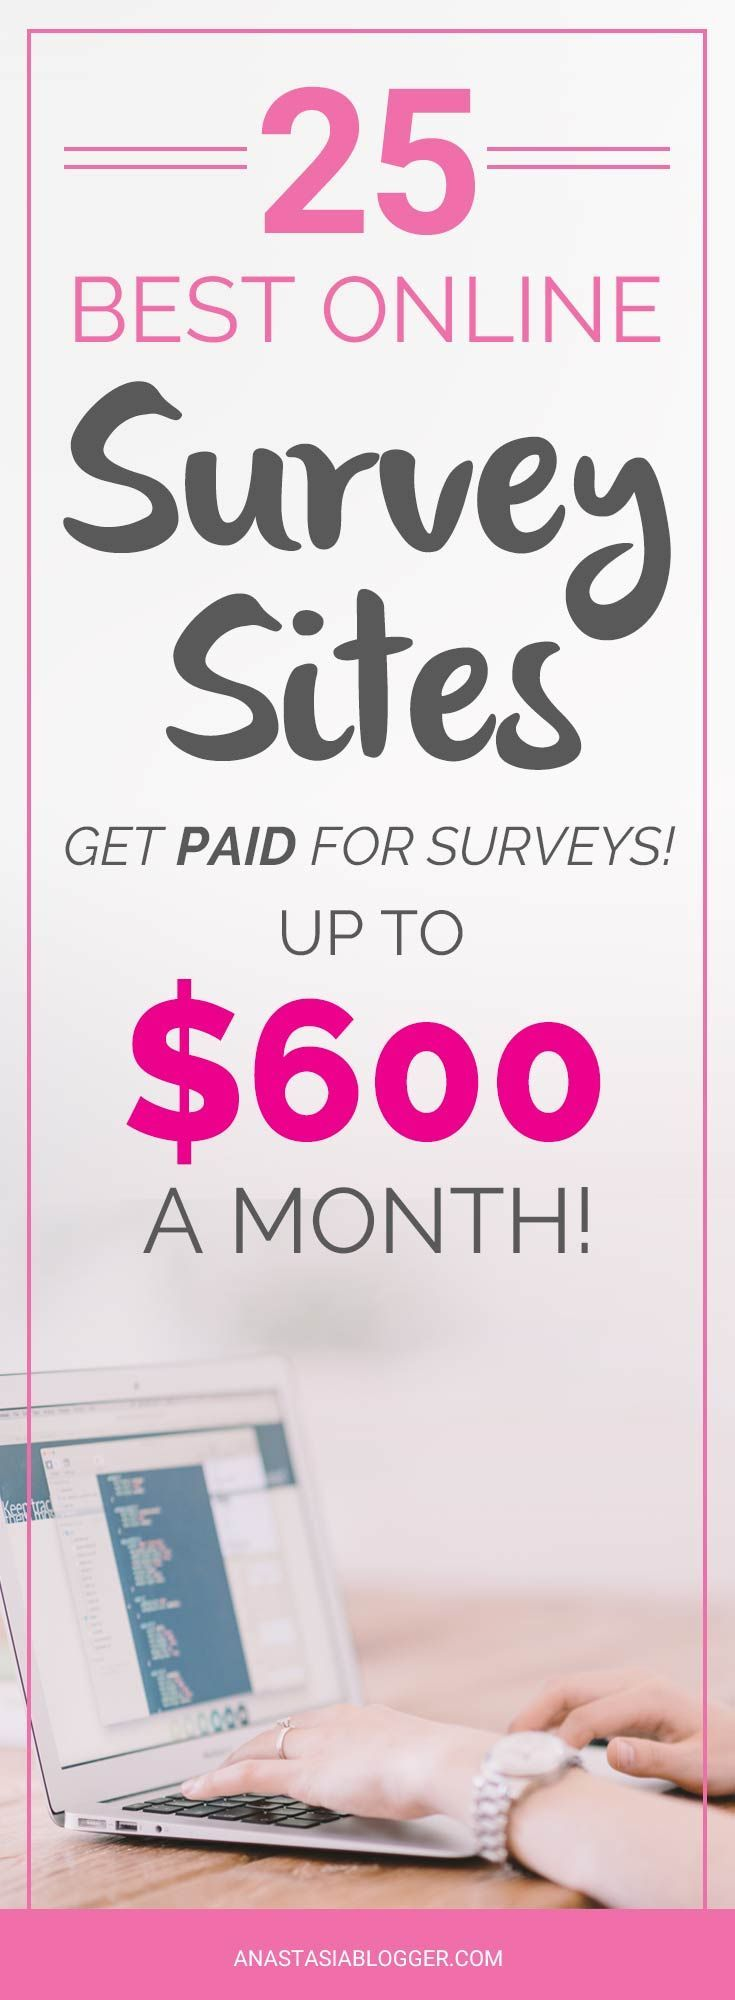 25 best paid surveys sites. Get paid for surveys! Online surveys for money, Online surveys that pay, Paid online surveys. Get a list of Best online surveys in the US, Canada and the UK!